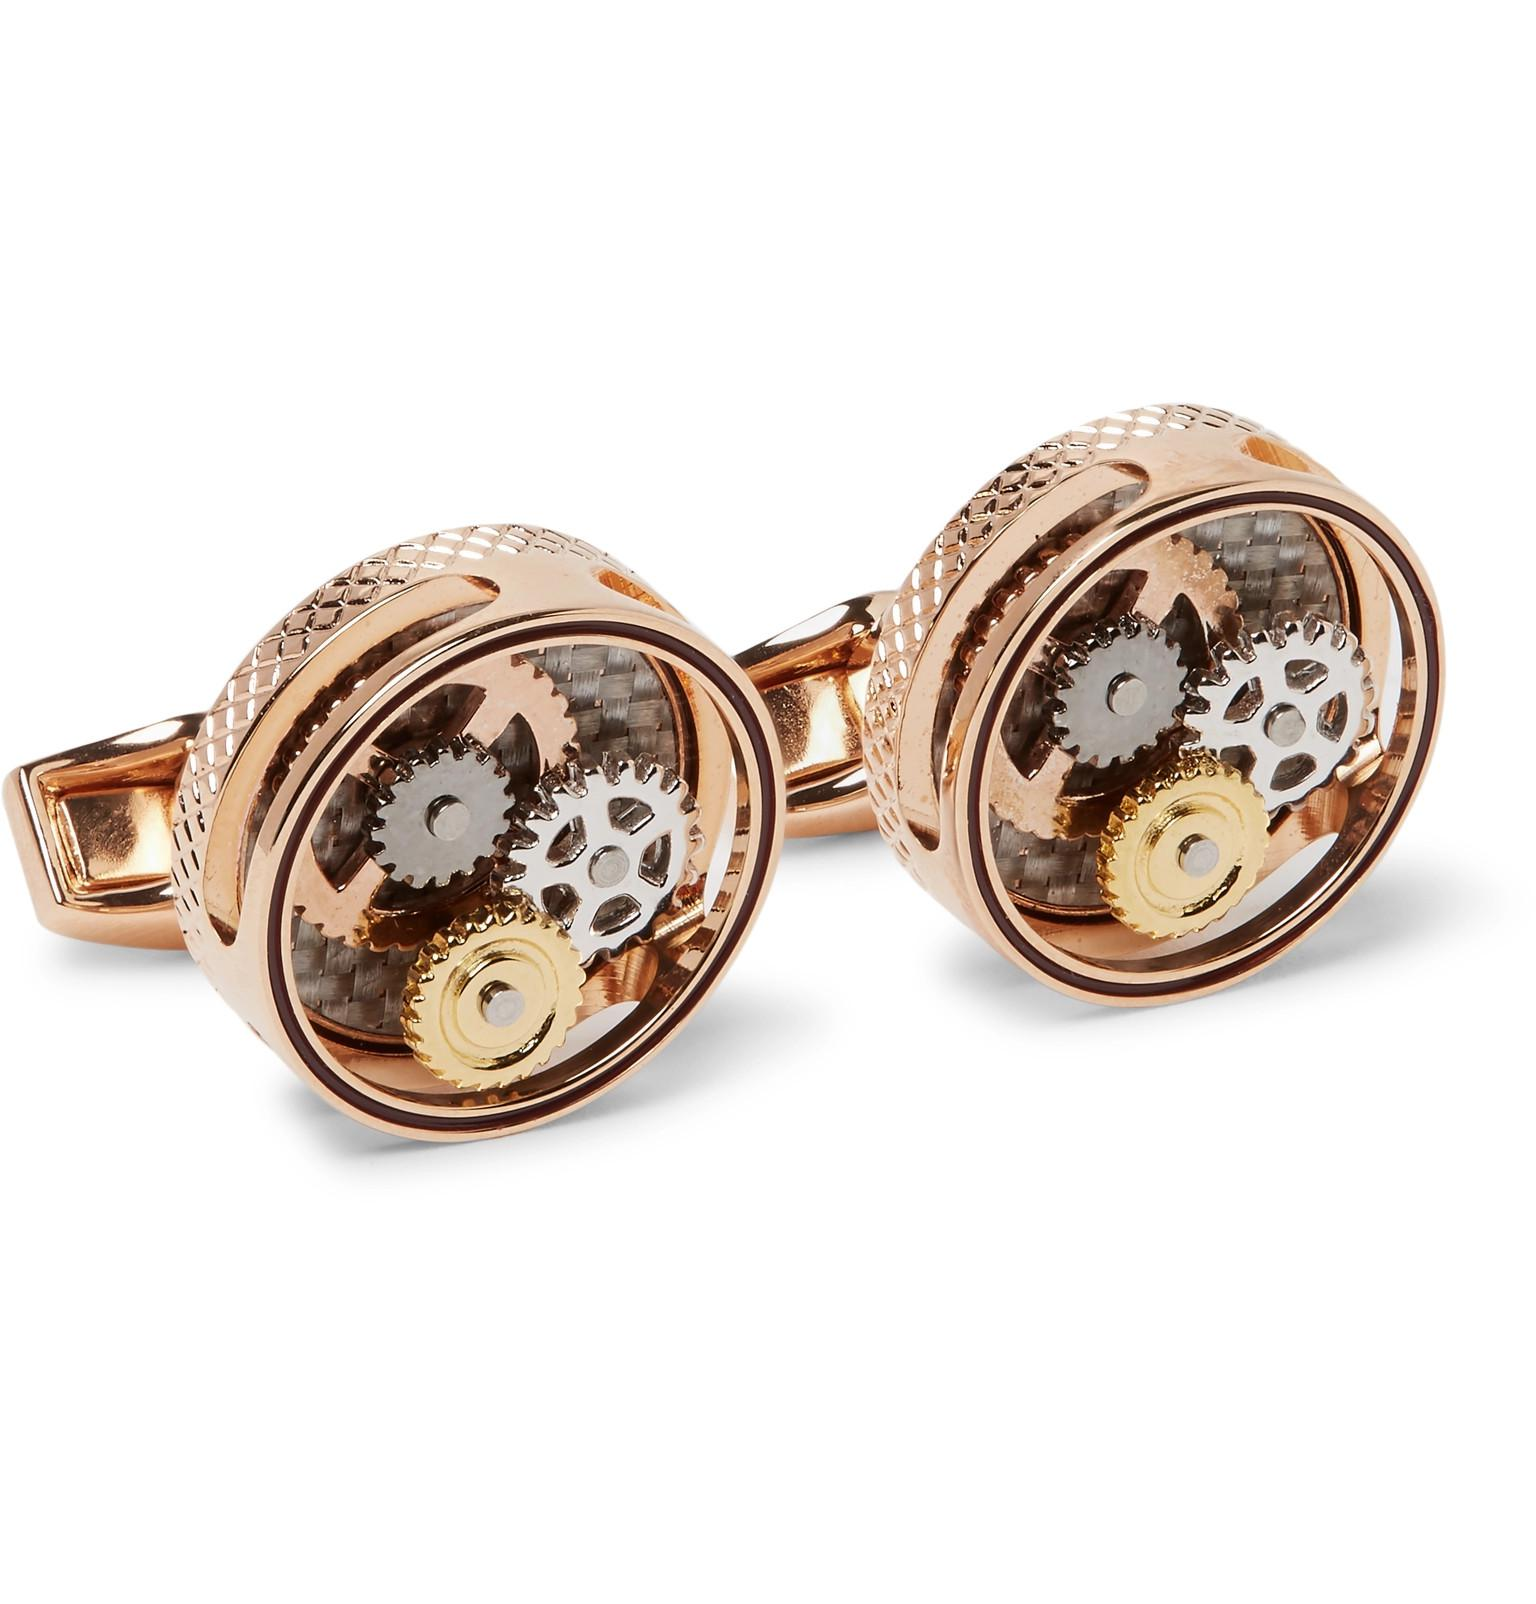 Tateossian Triptych Enamelled Rose Gold-plated Cufflinks - Rose gold YLO0Lo